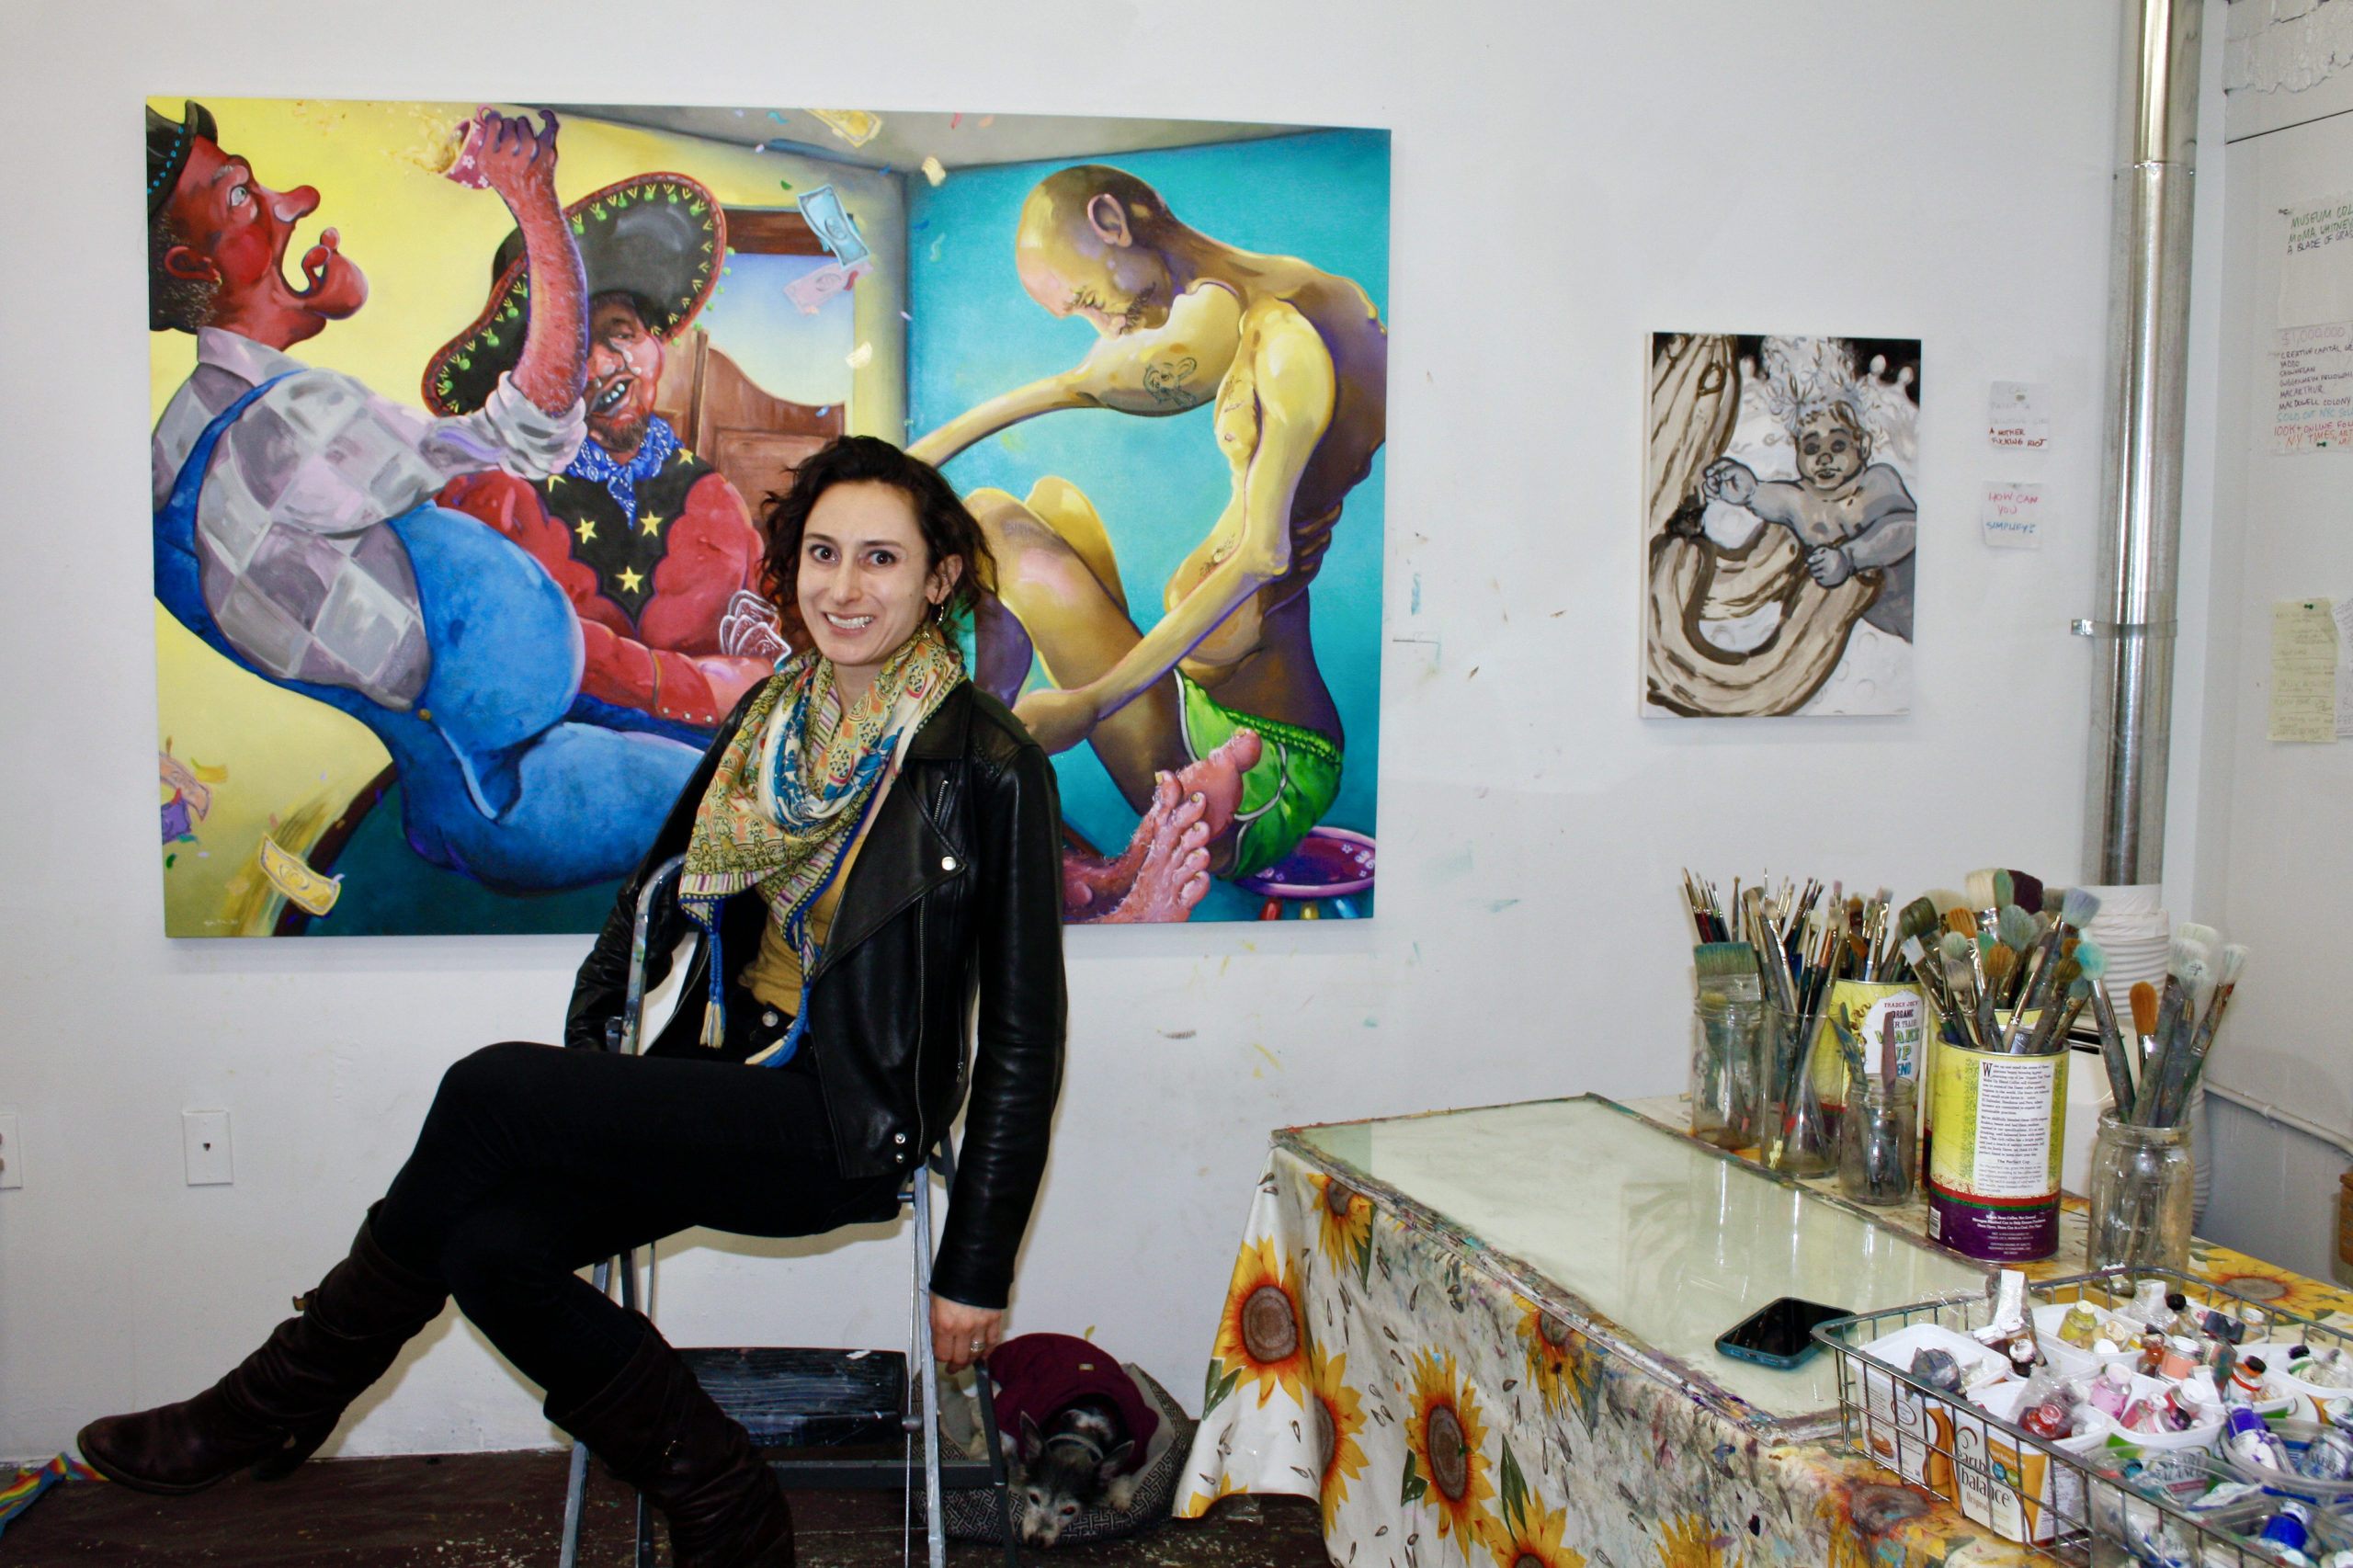 photo of Samantha Fein in front of a colorful painting with art supplies, a table and a smaller painting also in view